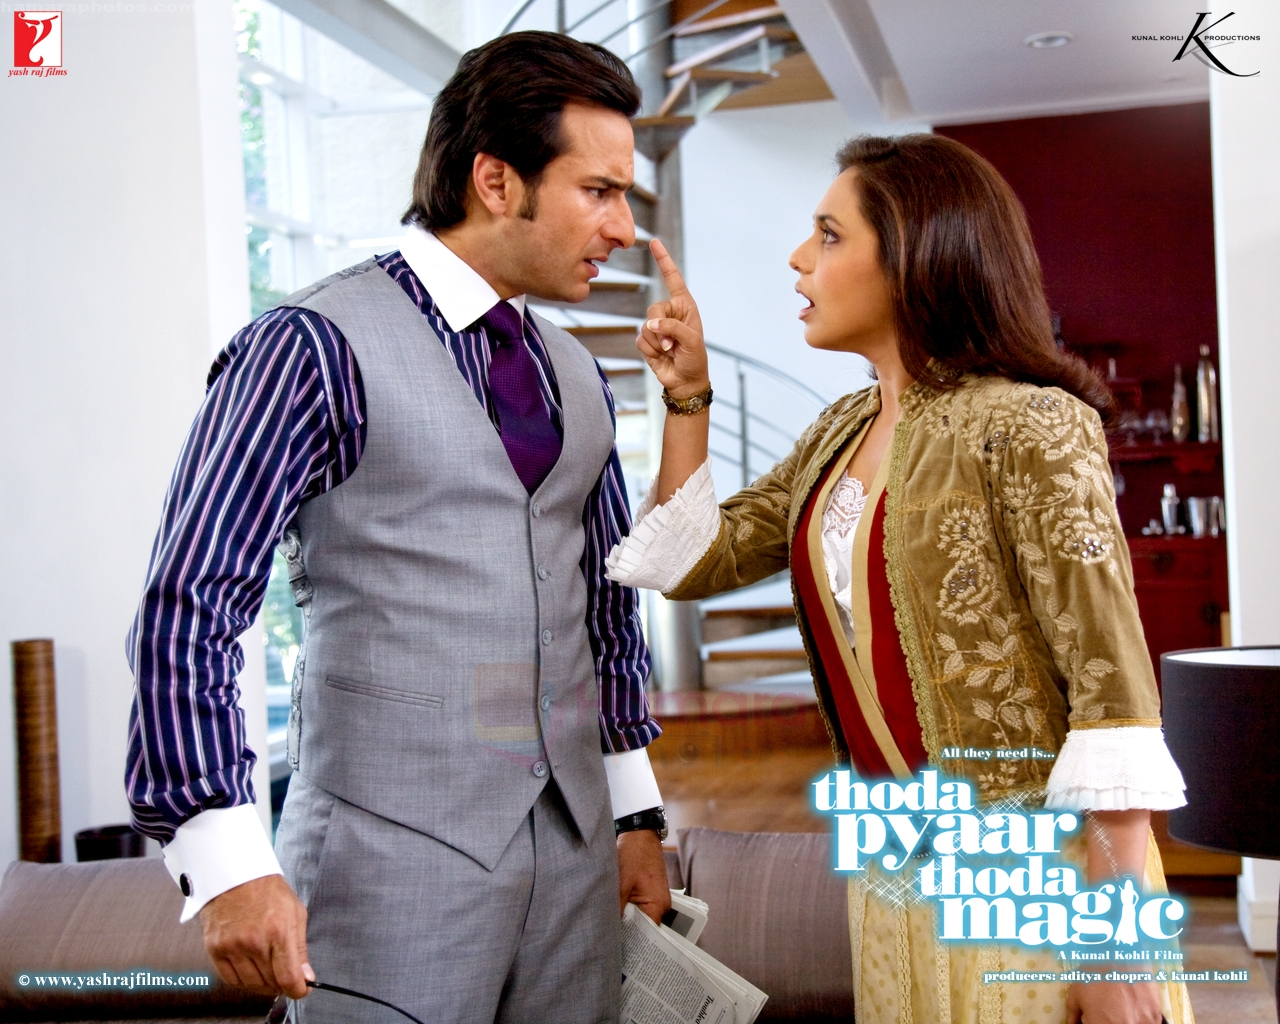 Saif Ali Khan, Rani Mukherjee Thoda Pyaar Thoda Magic Wallpaper